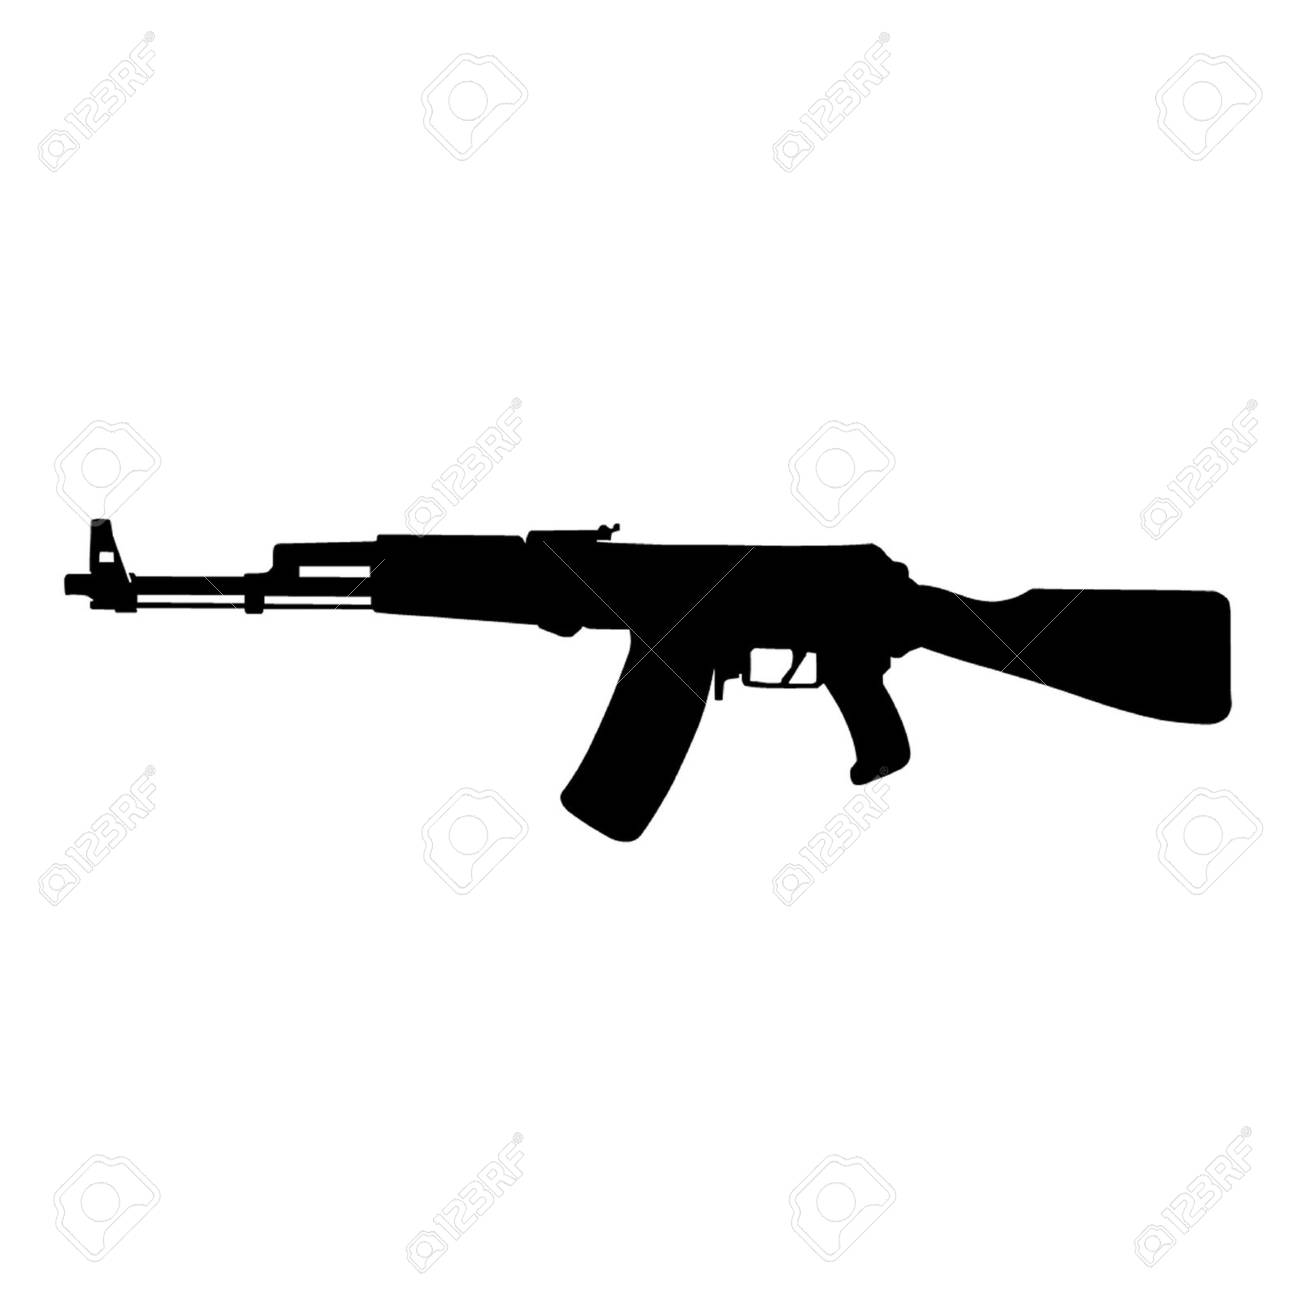 ak 47 assault rifle kalashnikov royalty free cliparts vectors and rh 123rf com ak 47 vector png ak 47 vector png